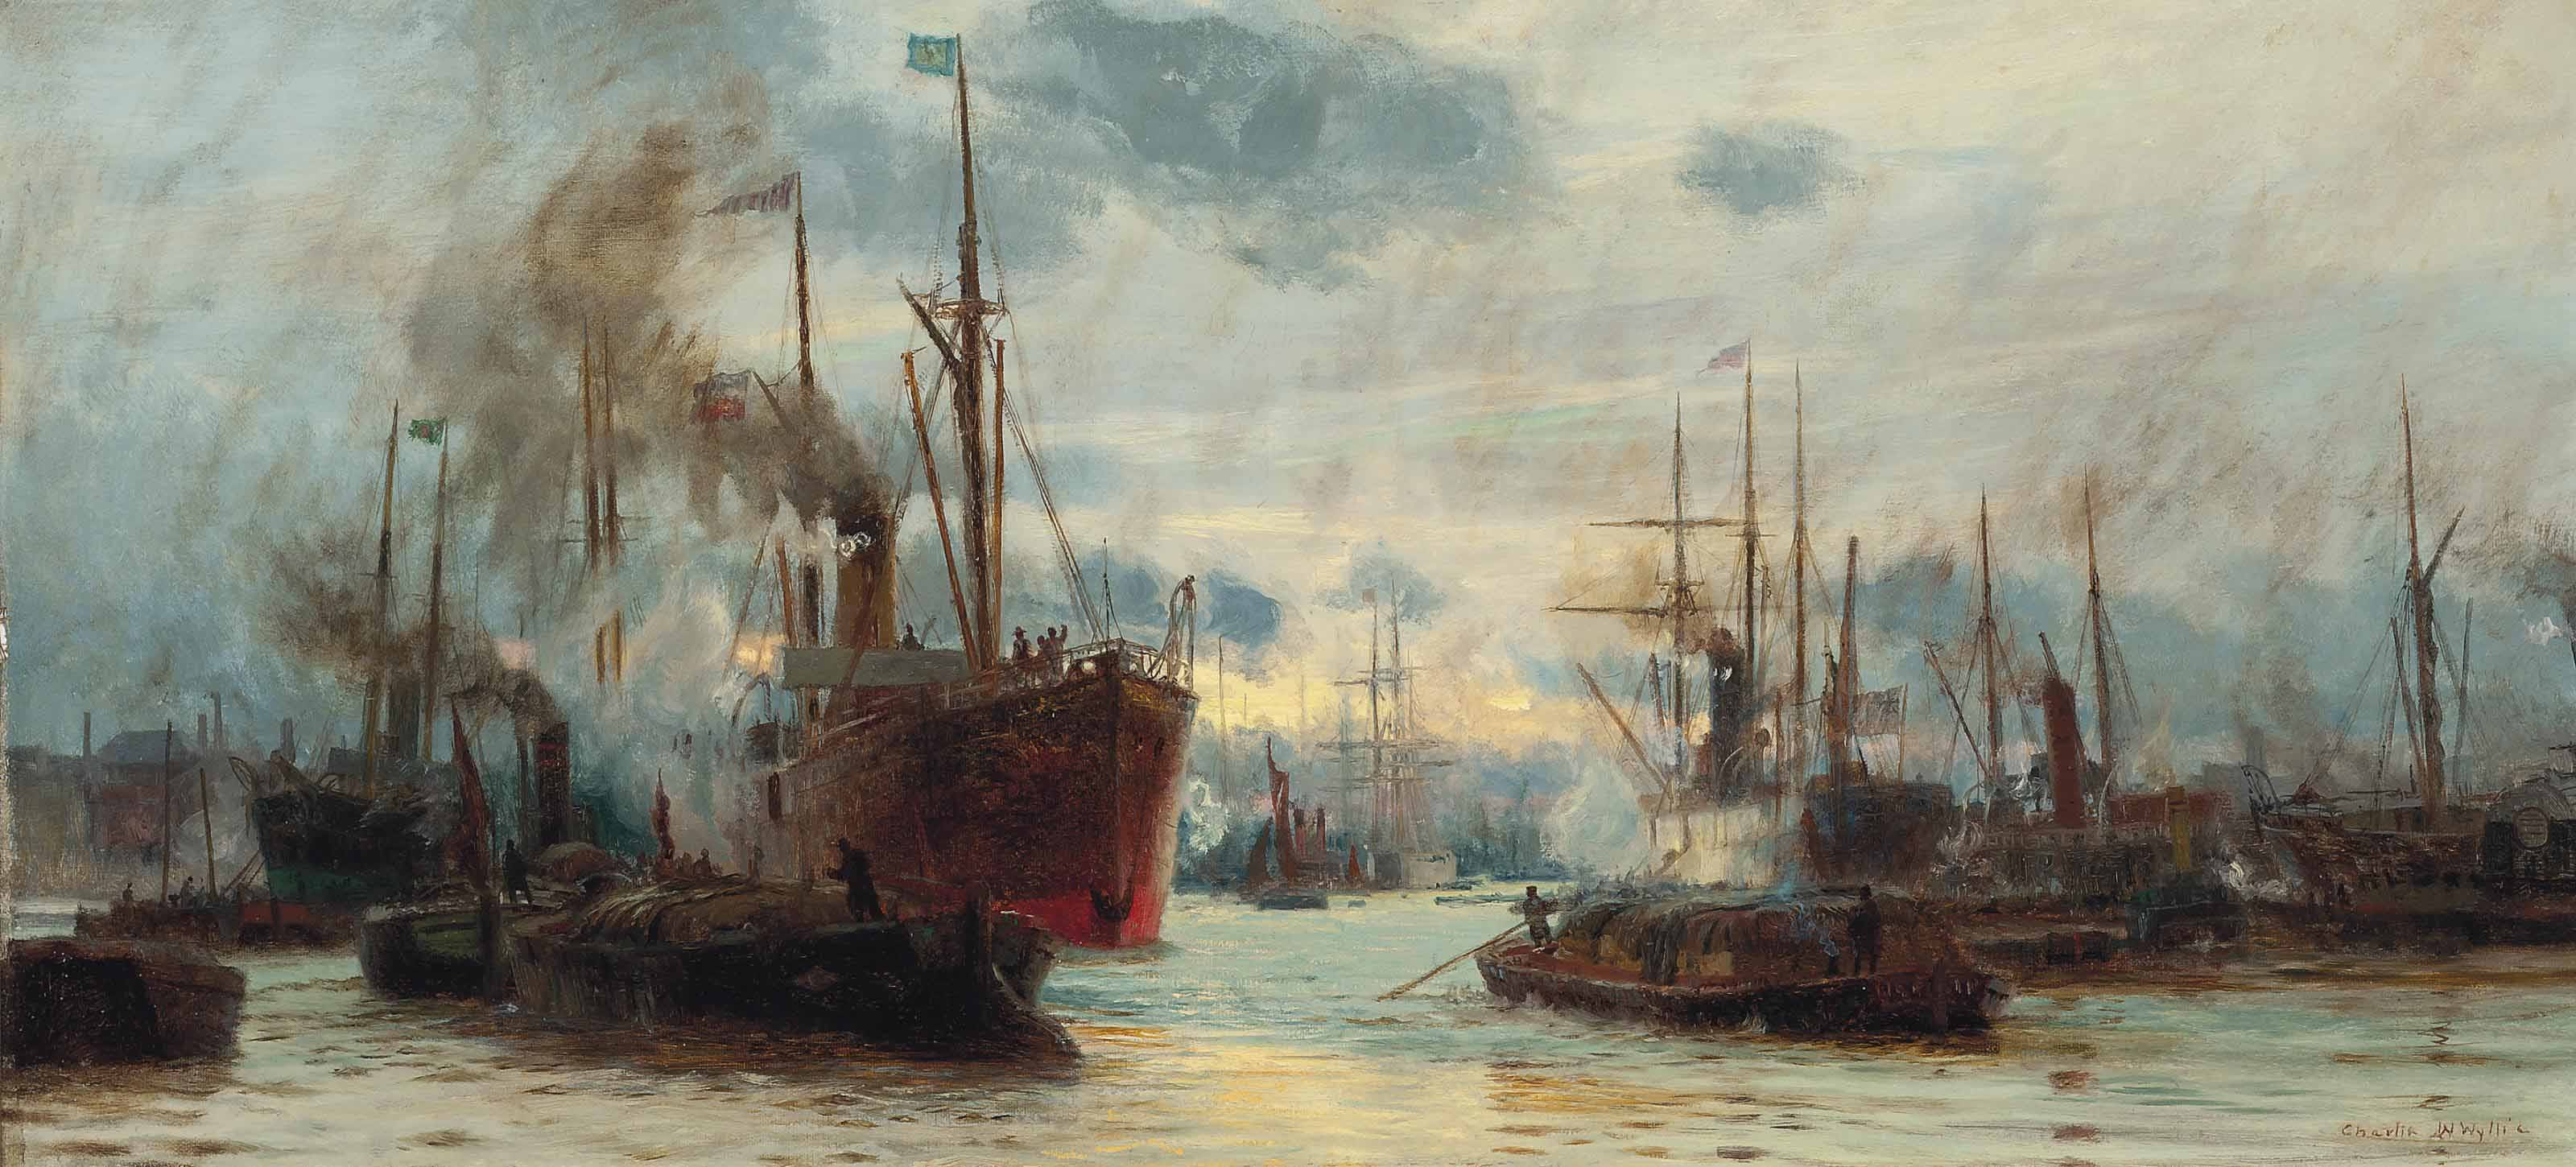 Charles BWilliam BWyllie Congested waters on the thames